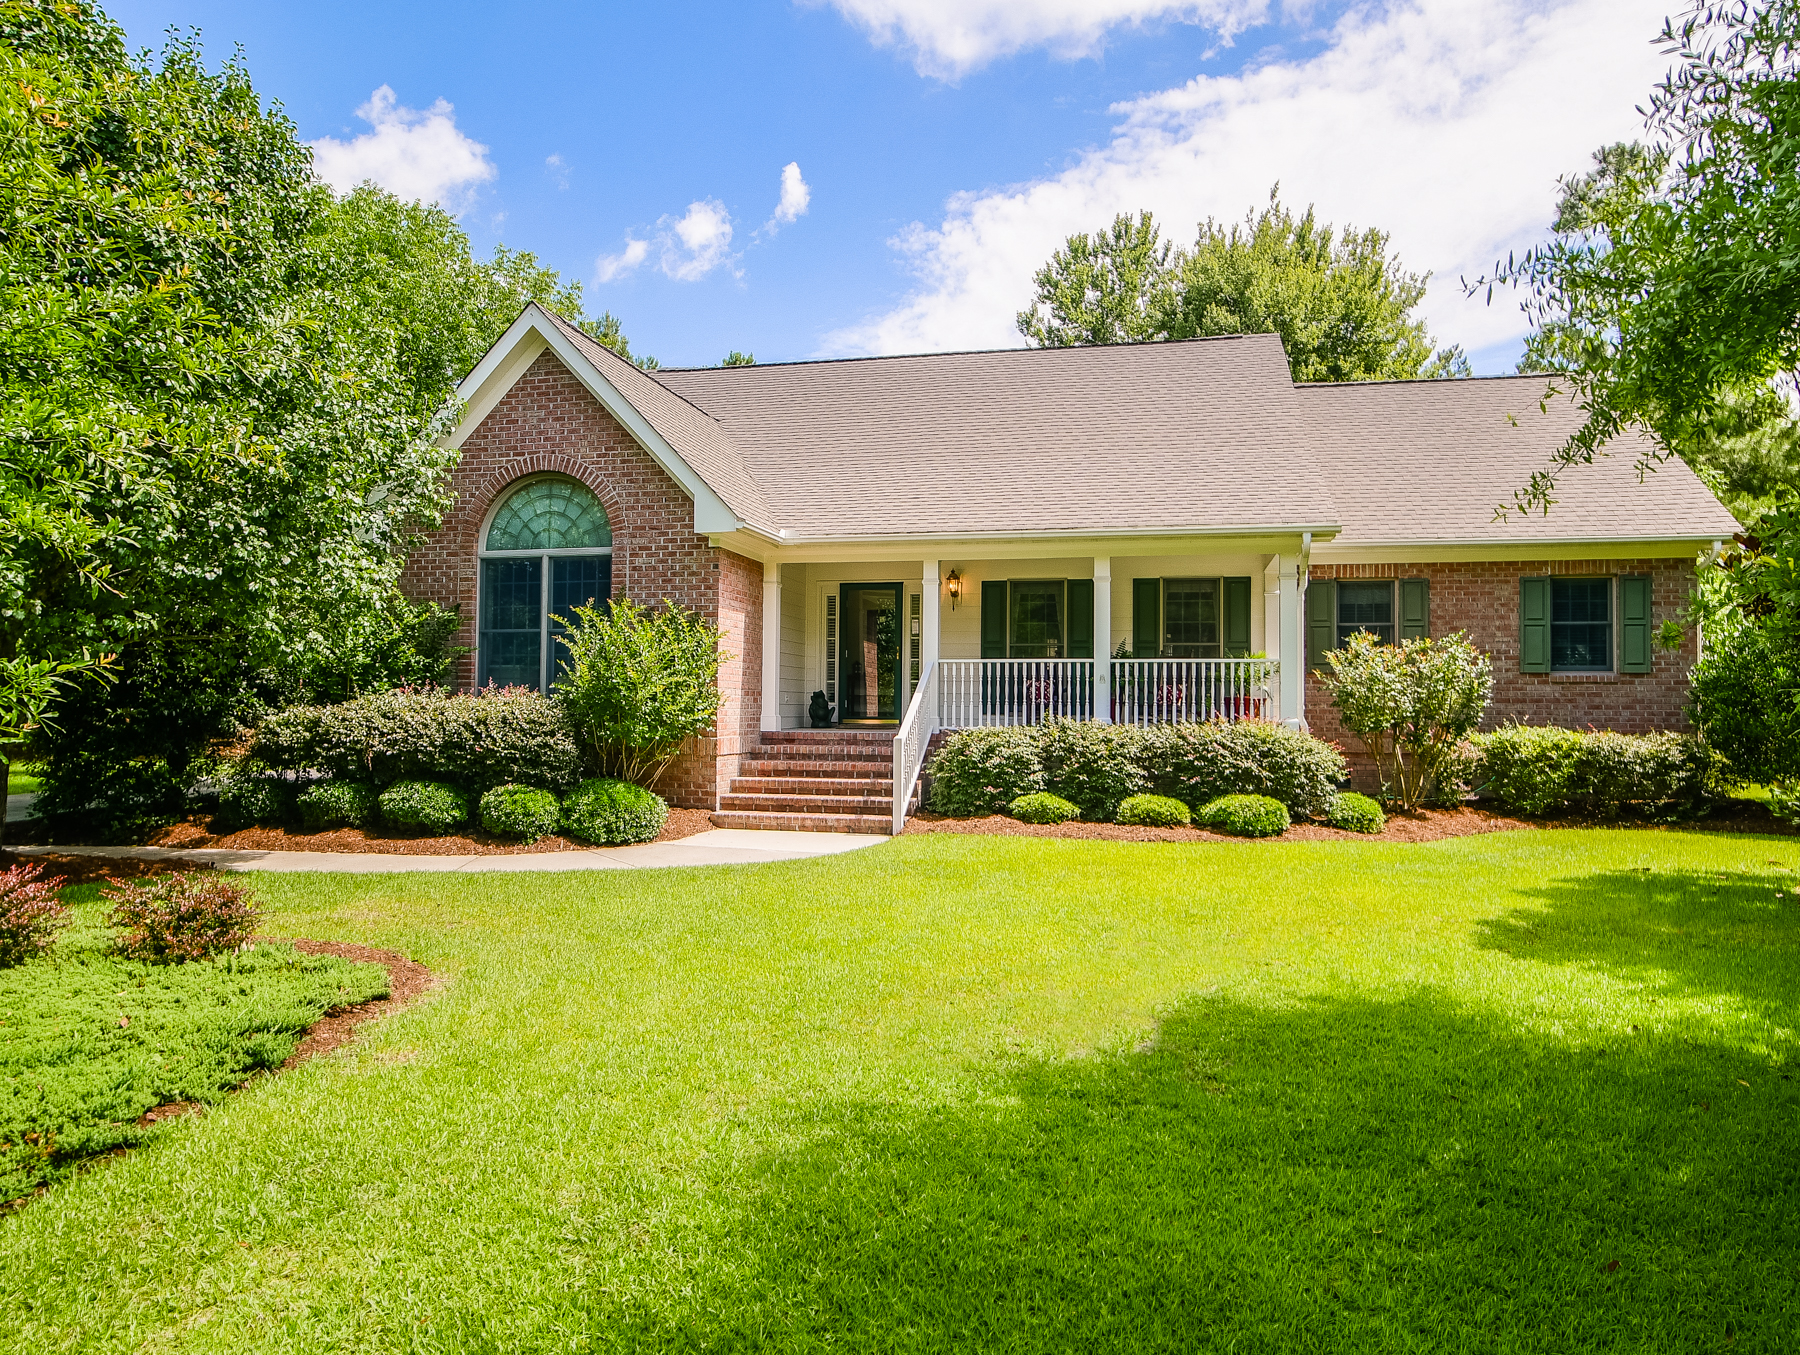 387 Red Fox Run Dr, Wallace, NC 28466